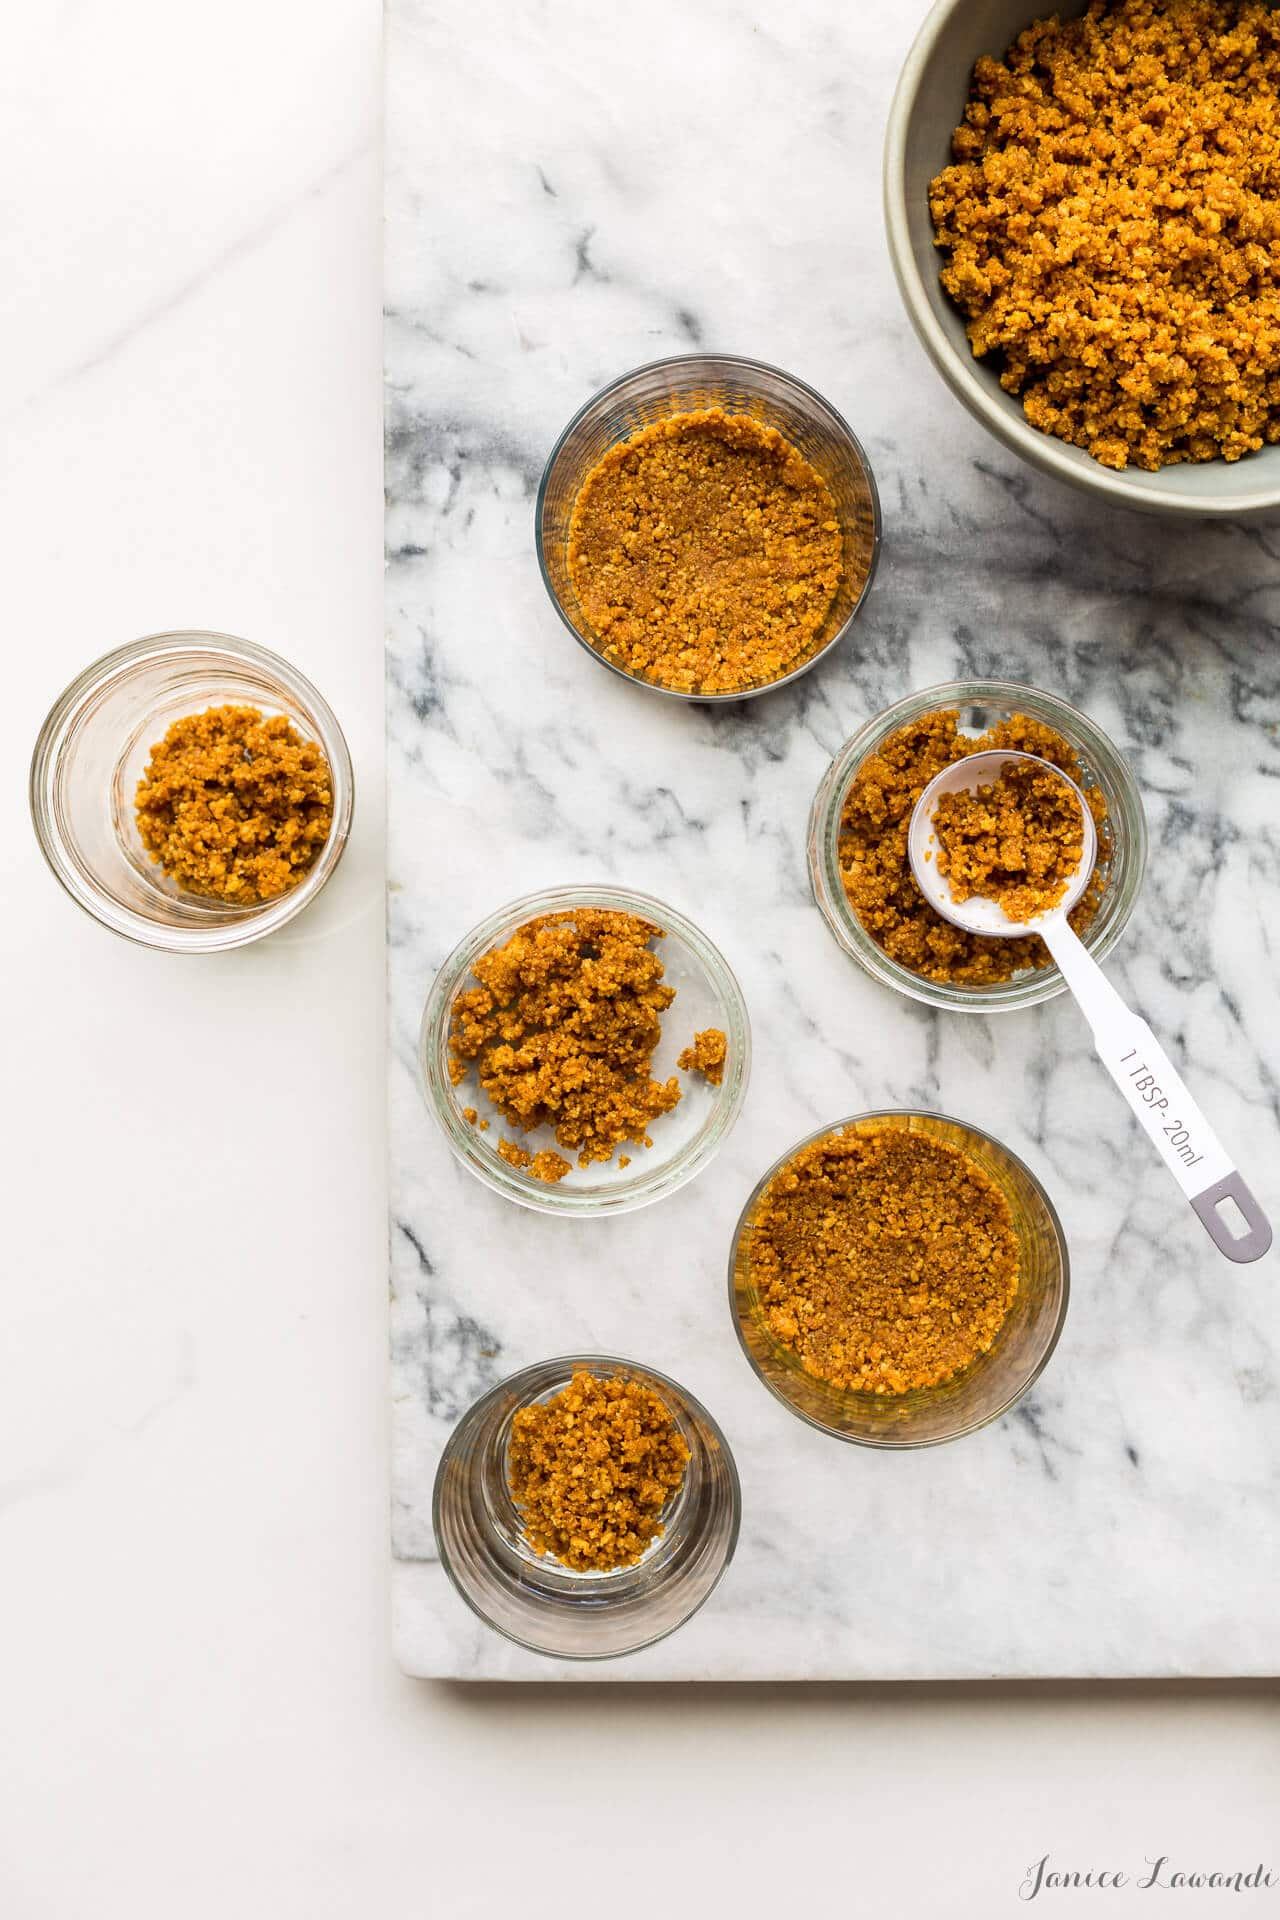 Easy no-bake graham cracker crumb crust that makes a great base for no bake cheesecakes and chocolate pots de crème